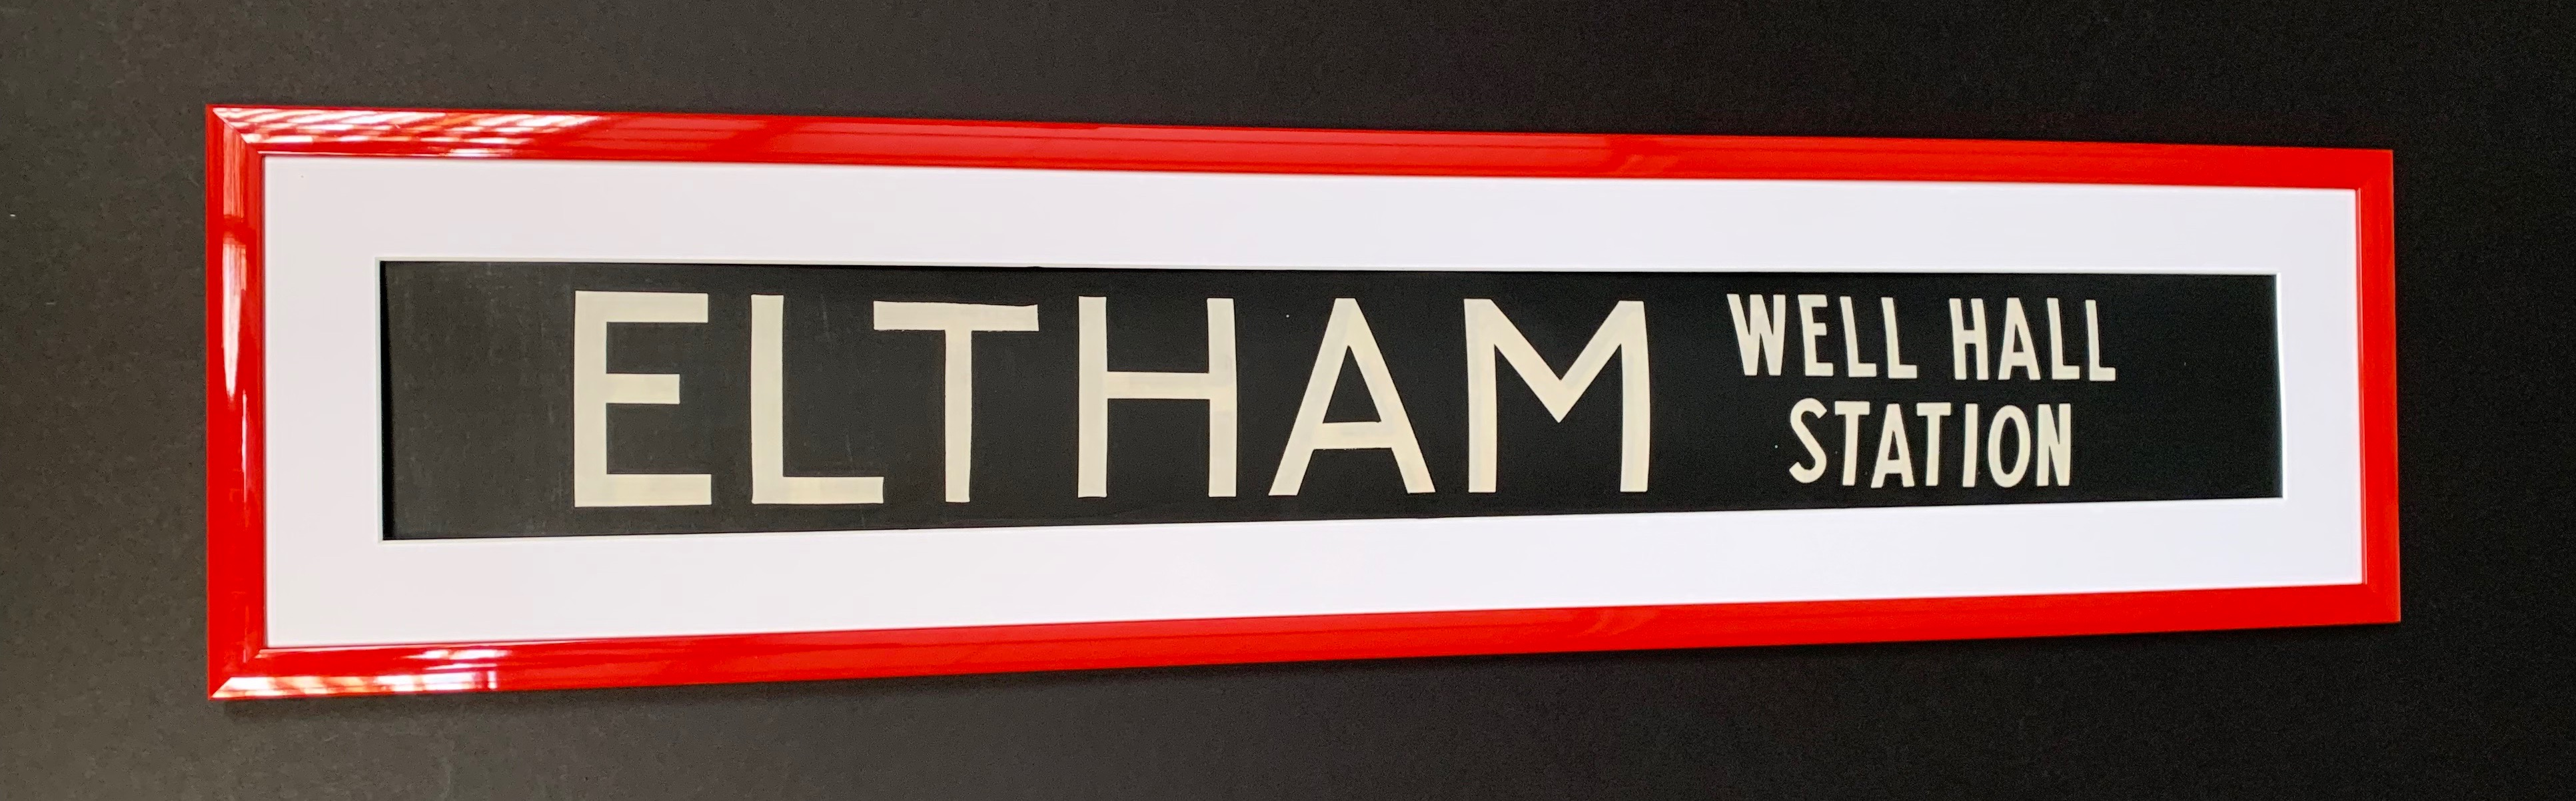 Eltham Well Hall Station